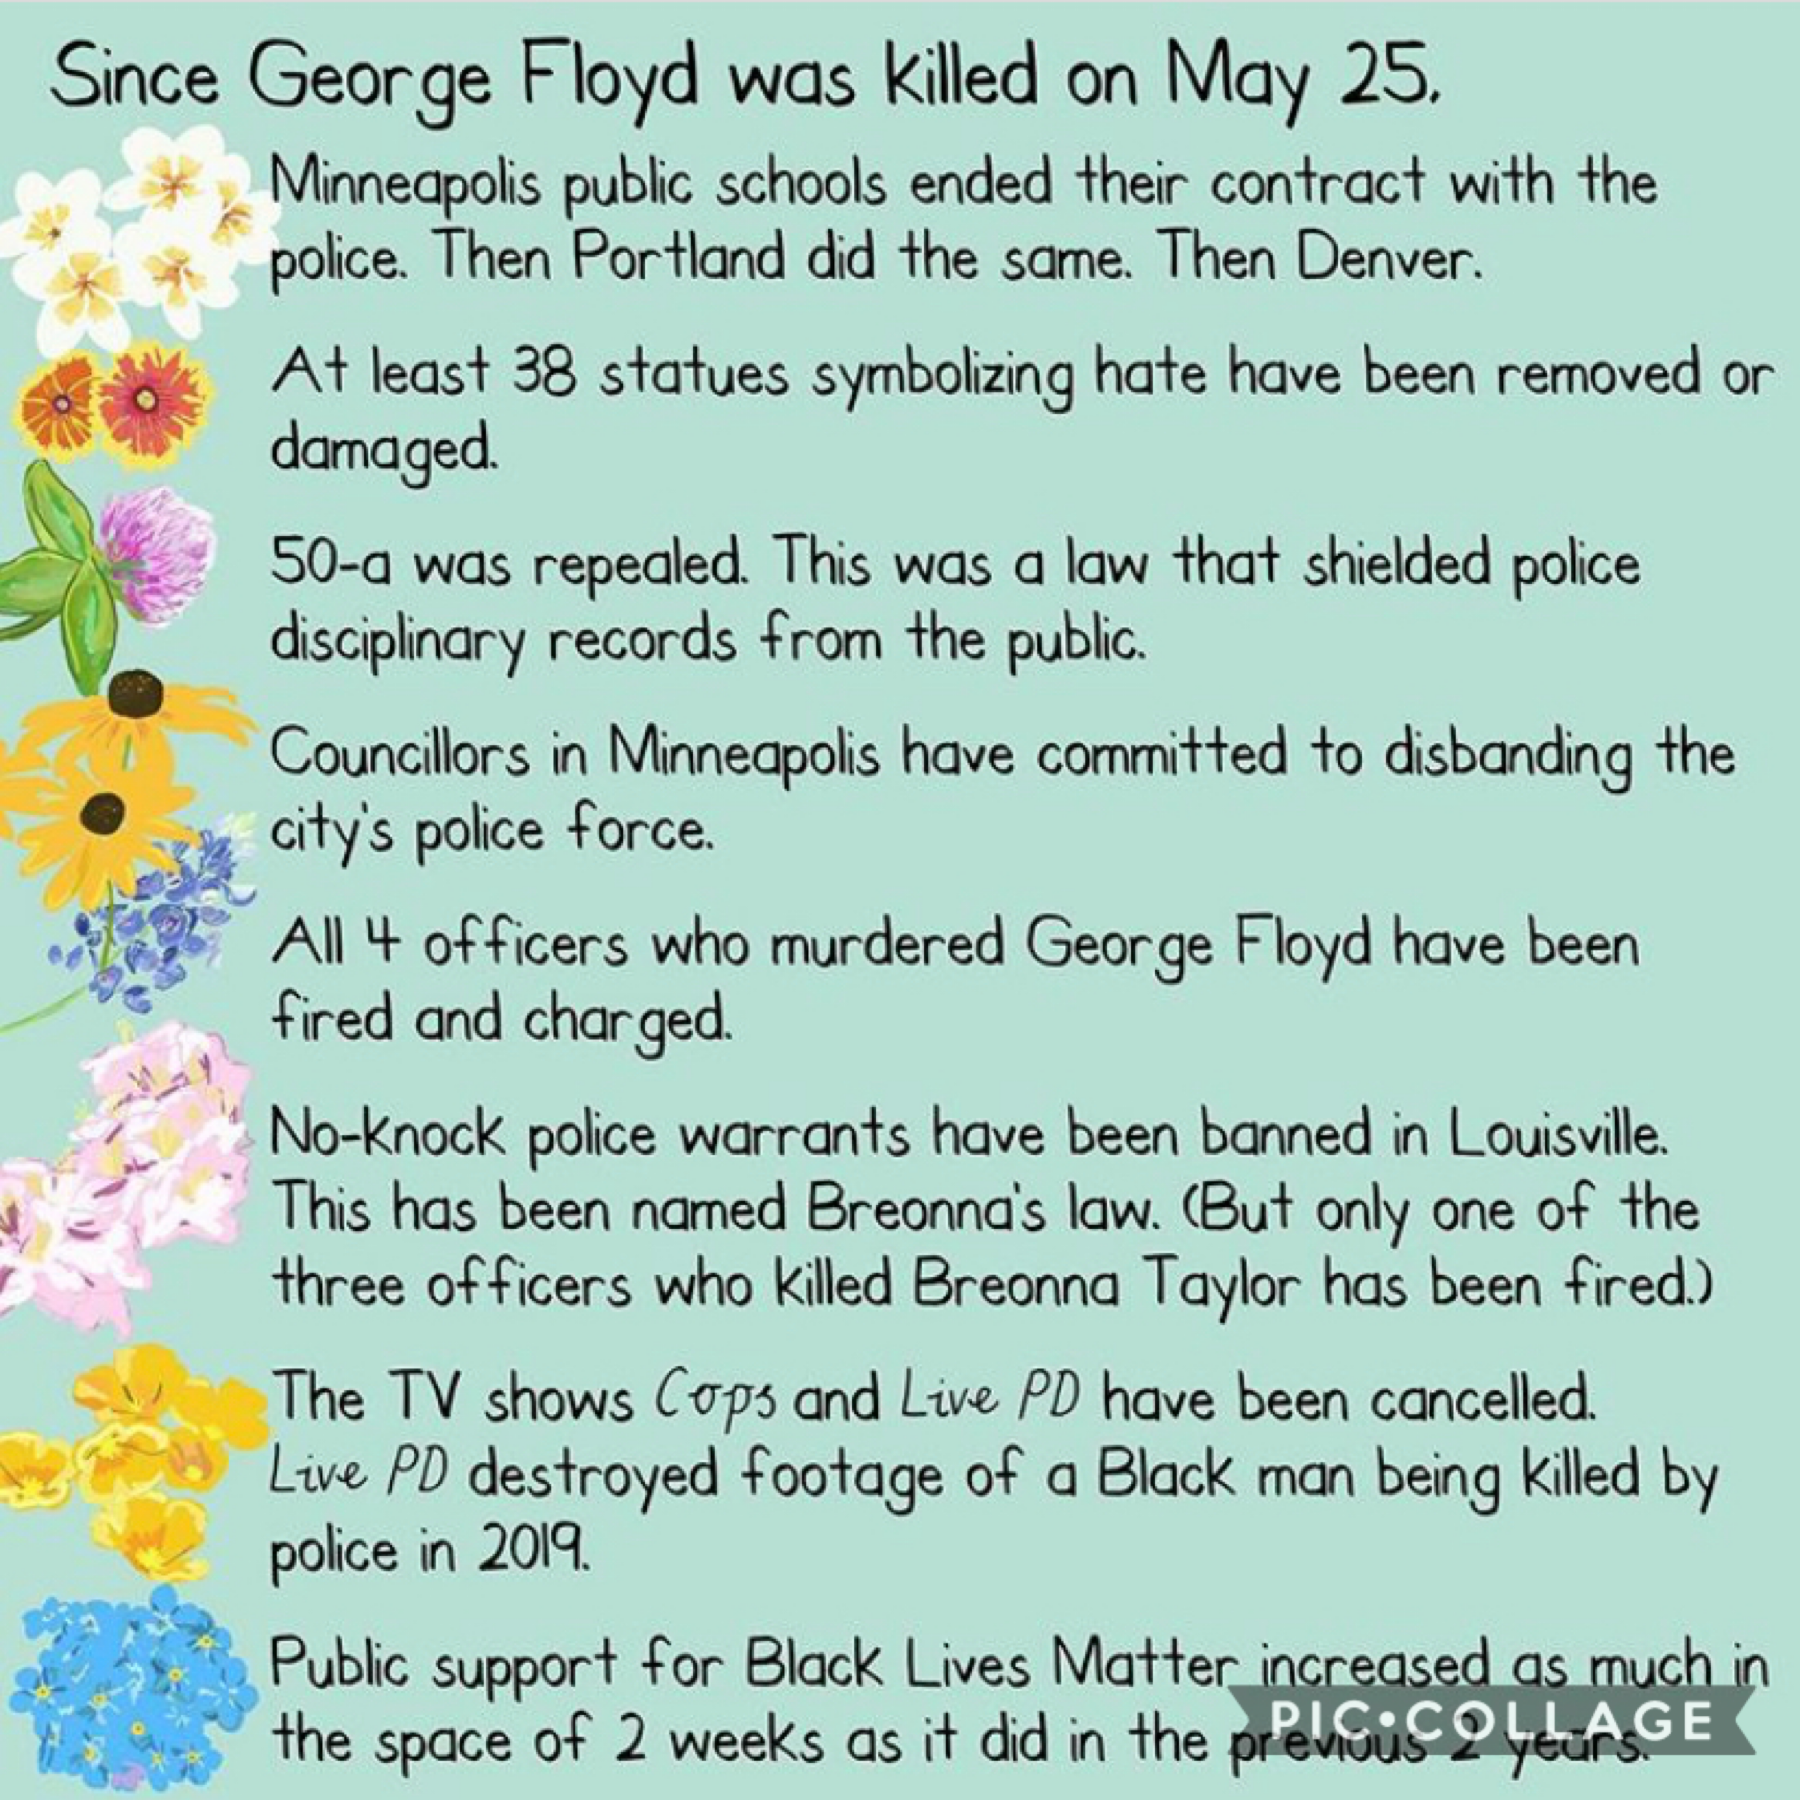 these facts are as of june 24 ♥️ sadly, in the space of 30 days, 74 lives pulled up from the earth before they had their time. whether you're feeling despair or hope (& you've got reason for both), keep going 🙏🏽💘 blm.